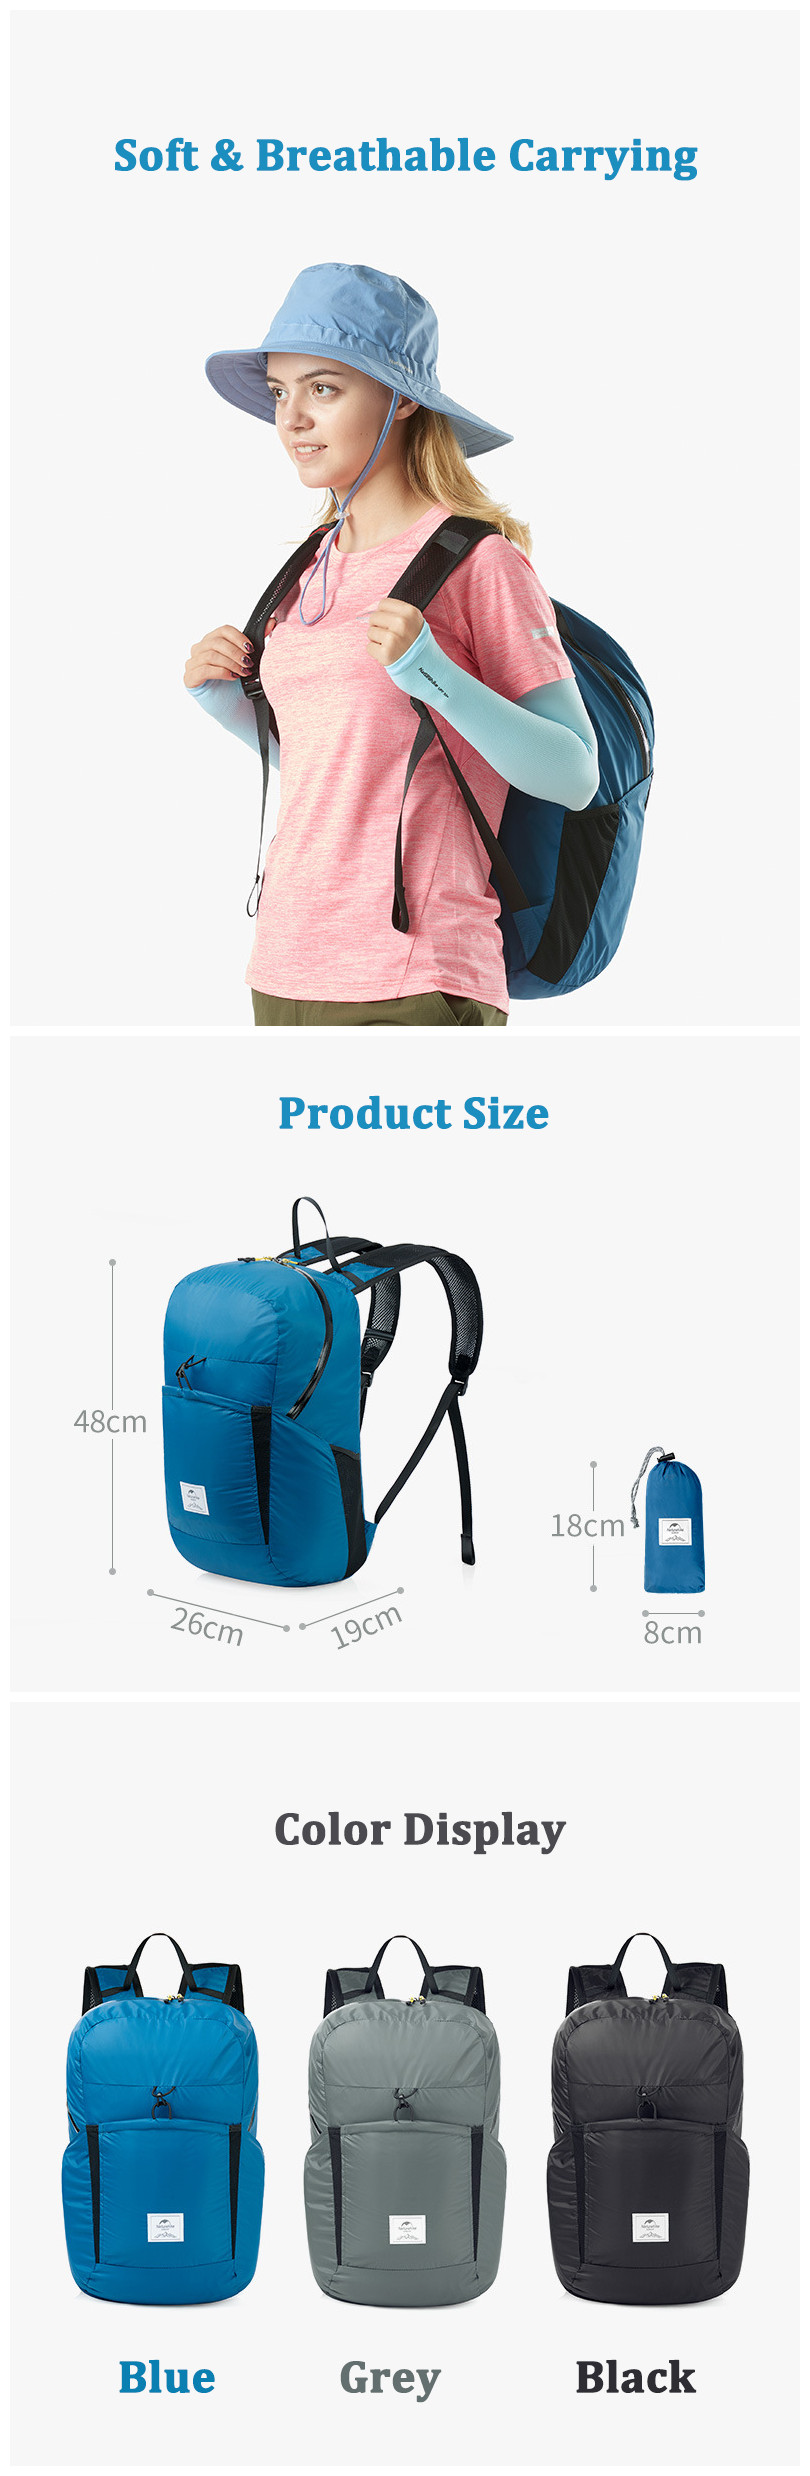 Naturehike NH17A017-B 25L Folding Backpack Ultralight 2000+ Waterproof Outdoor Sports Travel Bag